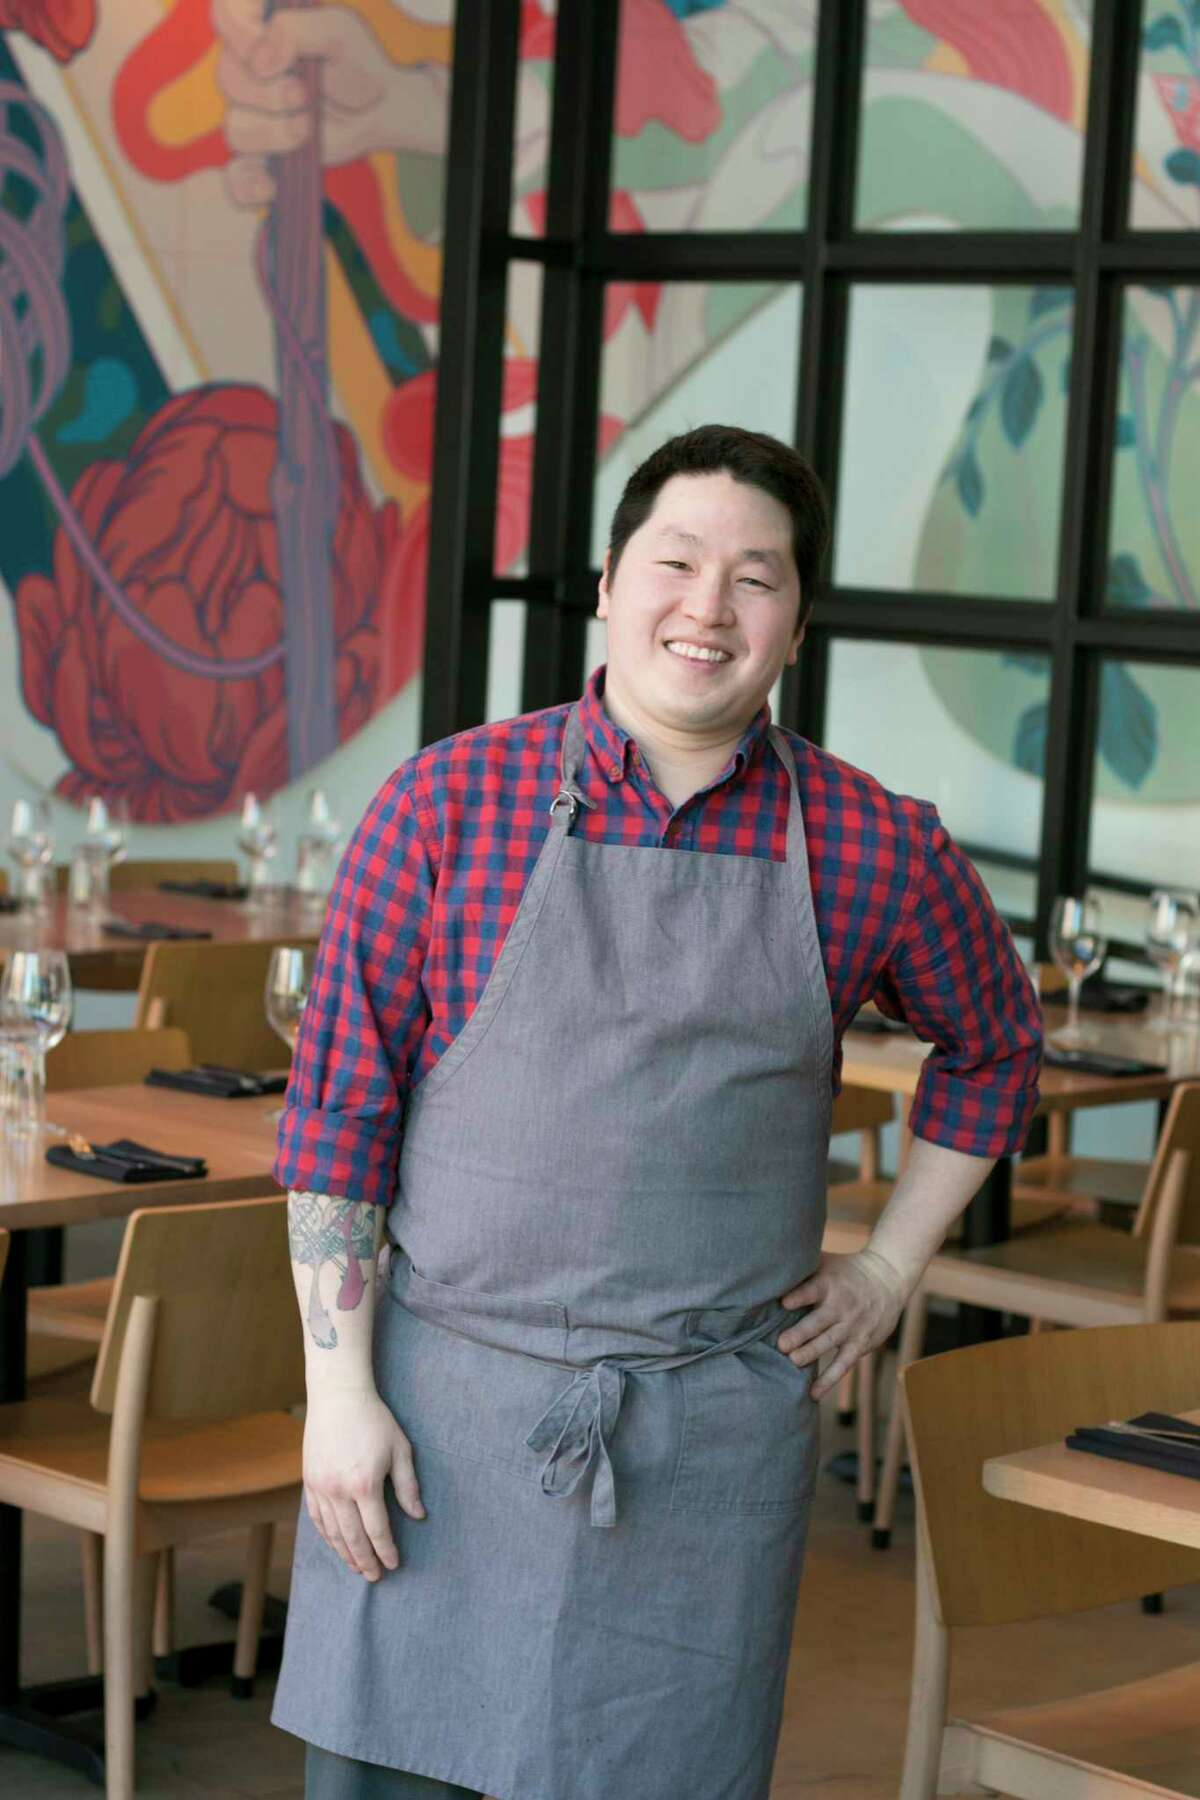 Tae Strain, executive chef of Momofuku CCDC in Washington, DC, has been added to the chef lineup for Southern Smoke 2018.